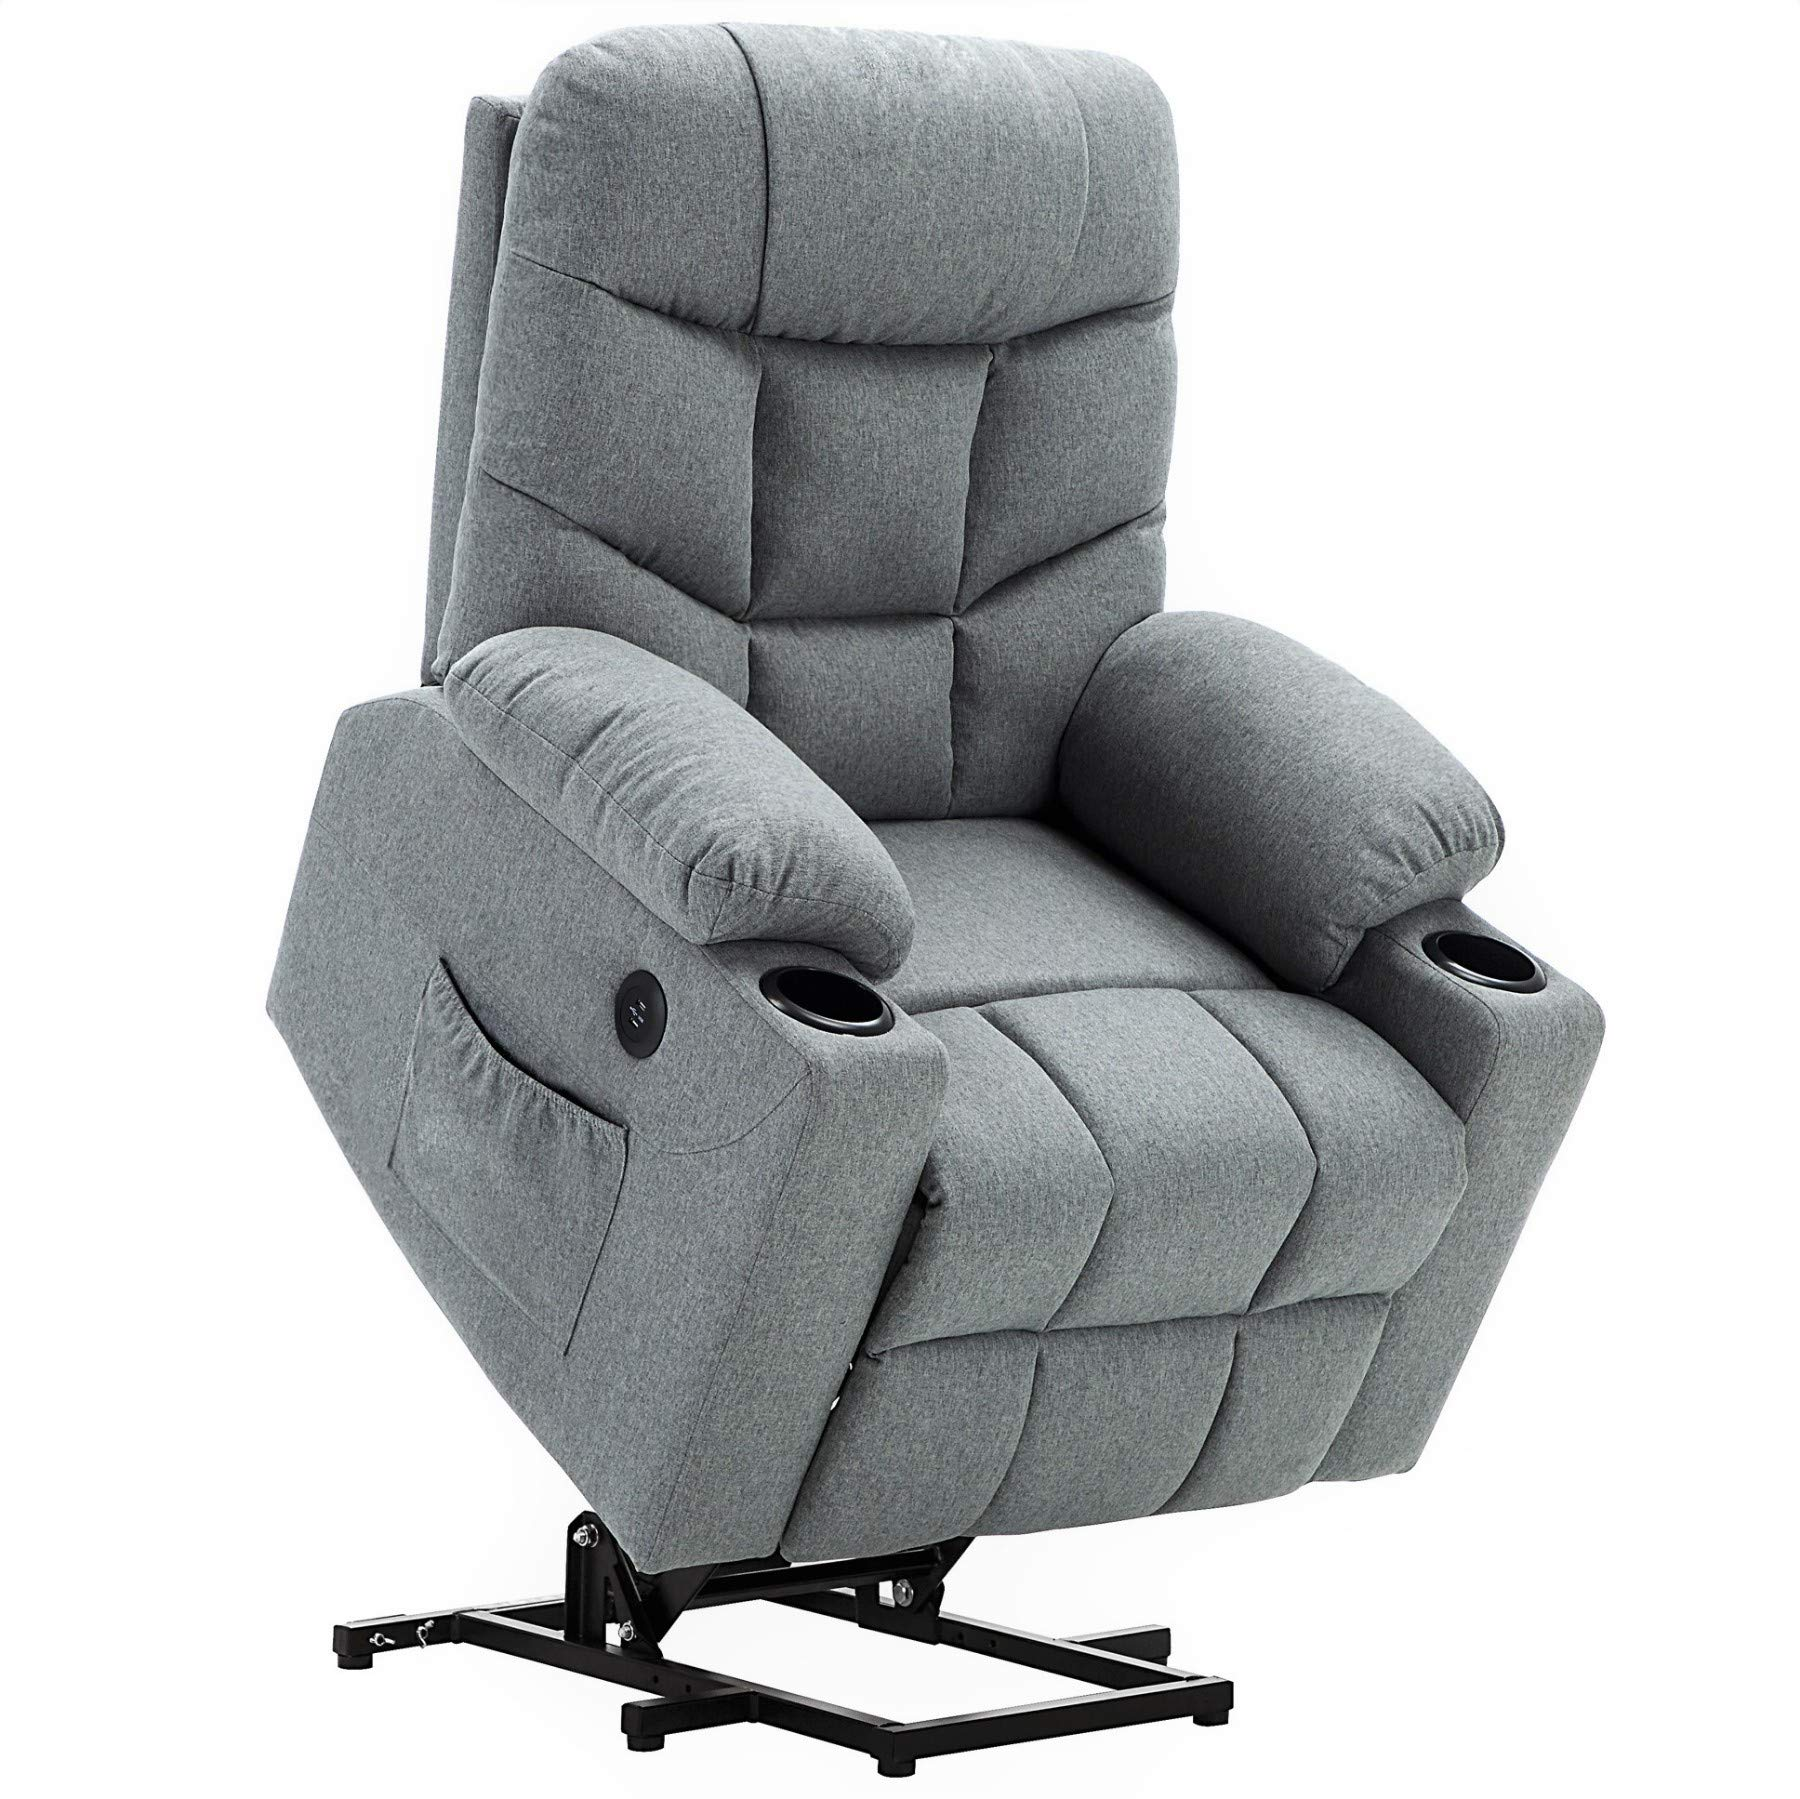 Recliner Lounge Control Charging Holders